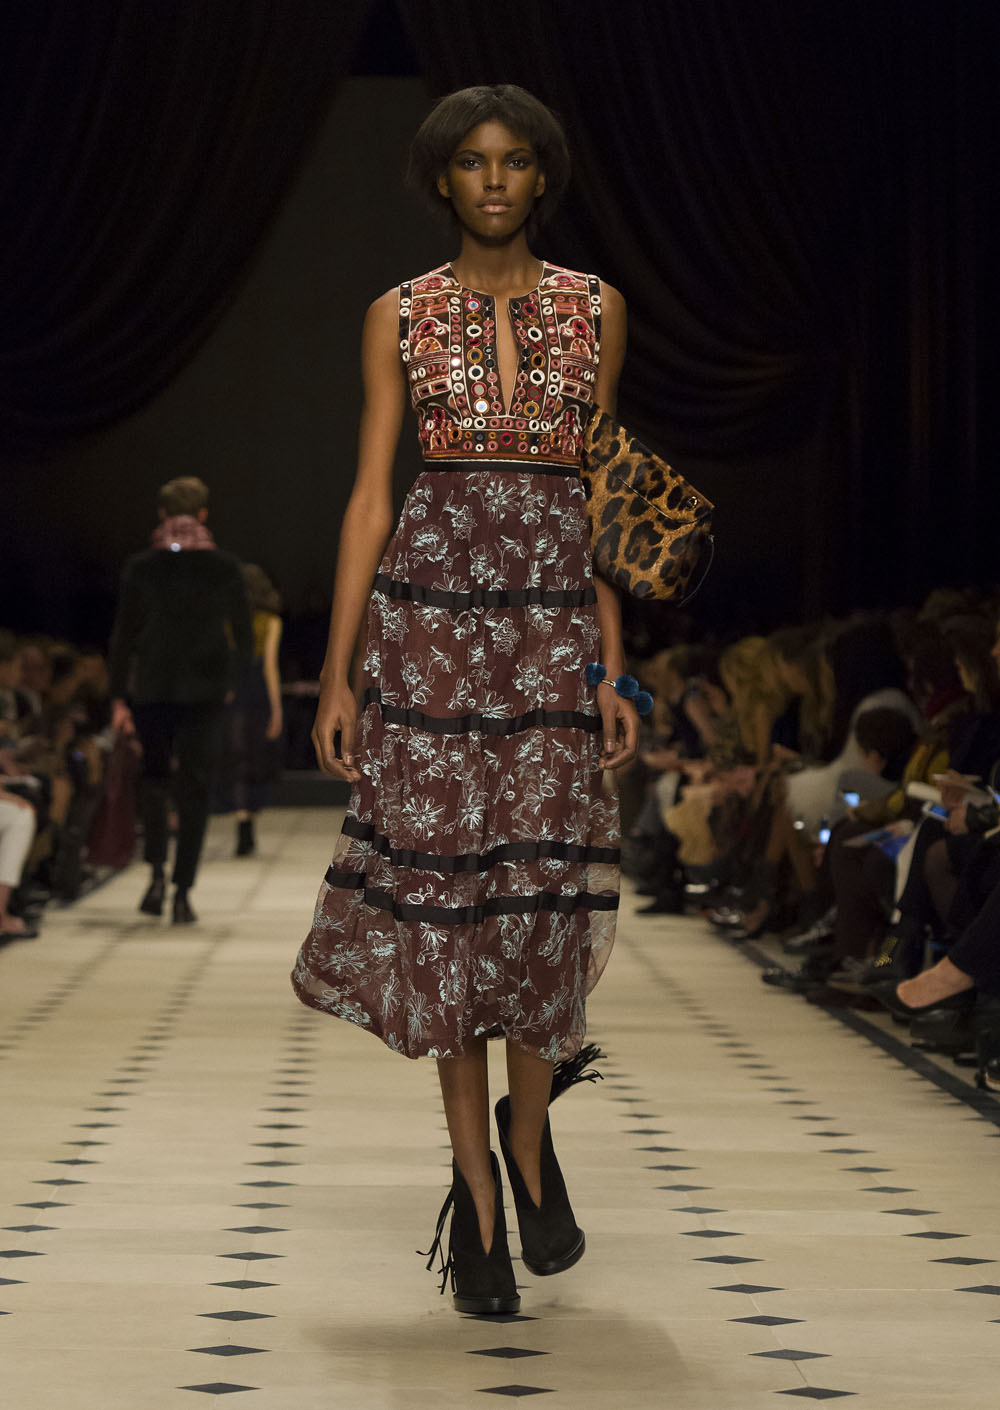 Burberry Womenswear Autumn_Winter 2015 Collection - Look 44